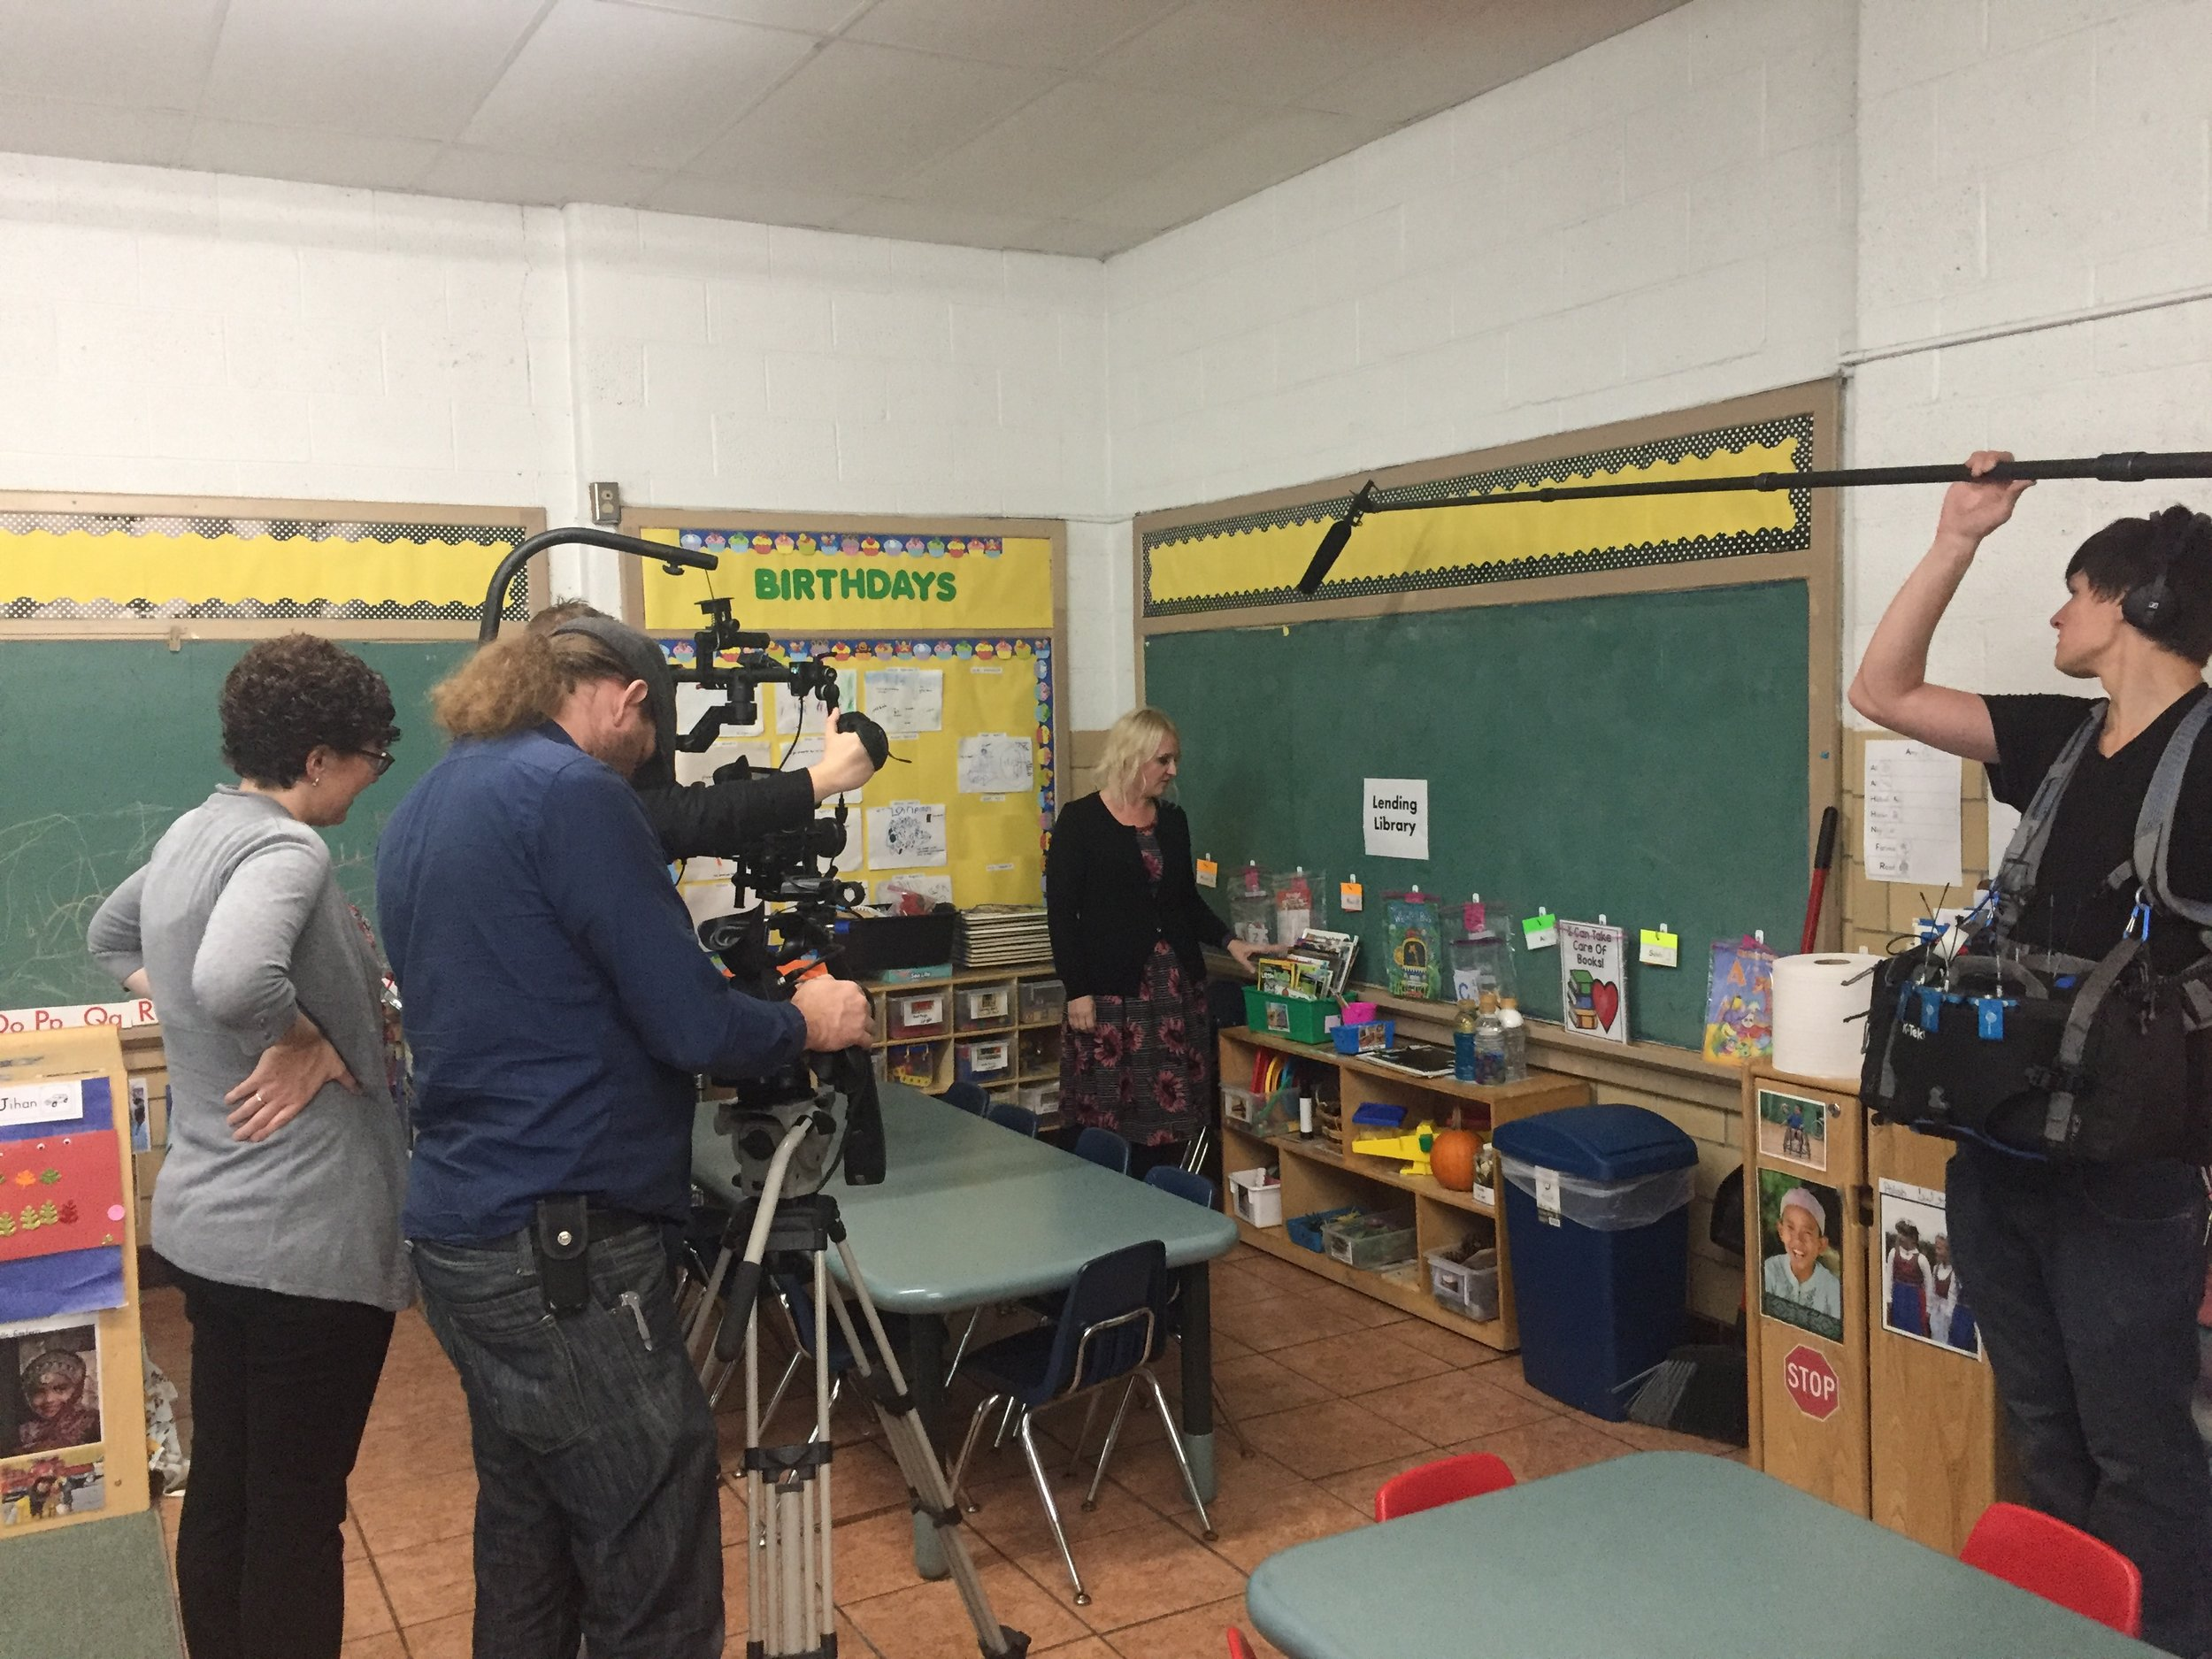 MDE was so impressed with our program they chose our classroom to tape a literacy training module to use with educators across the state!